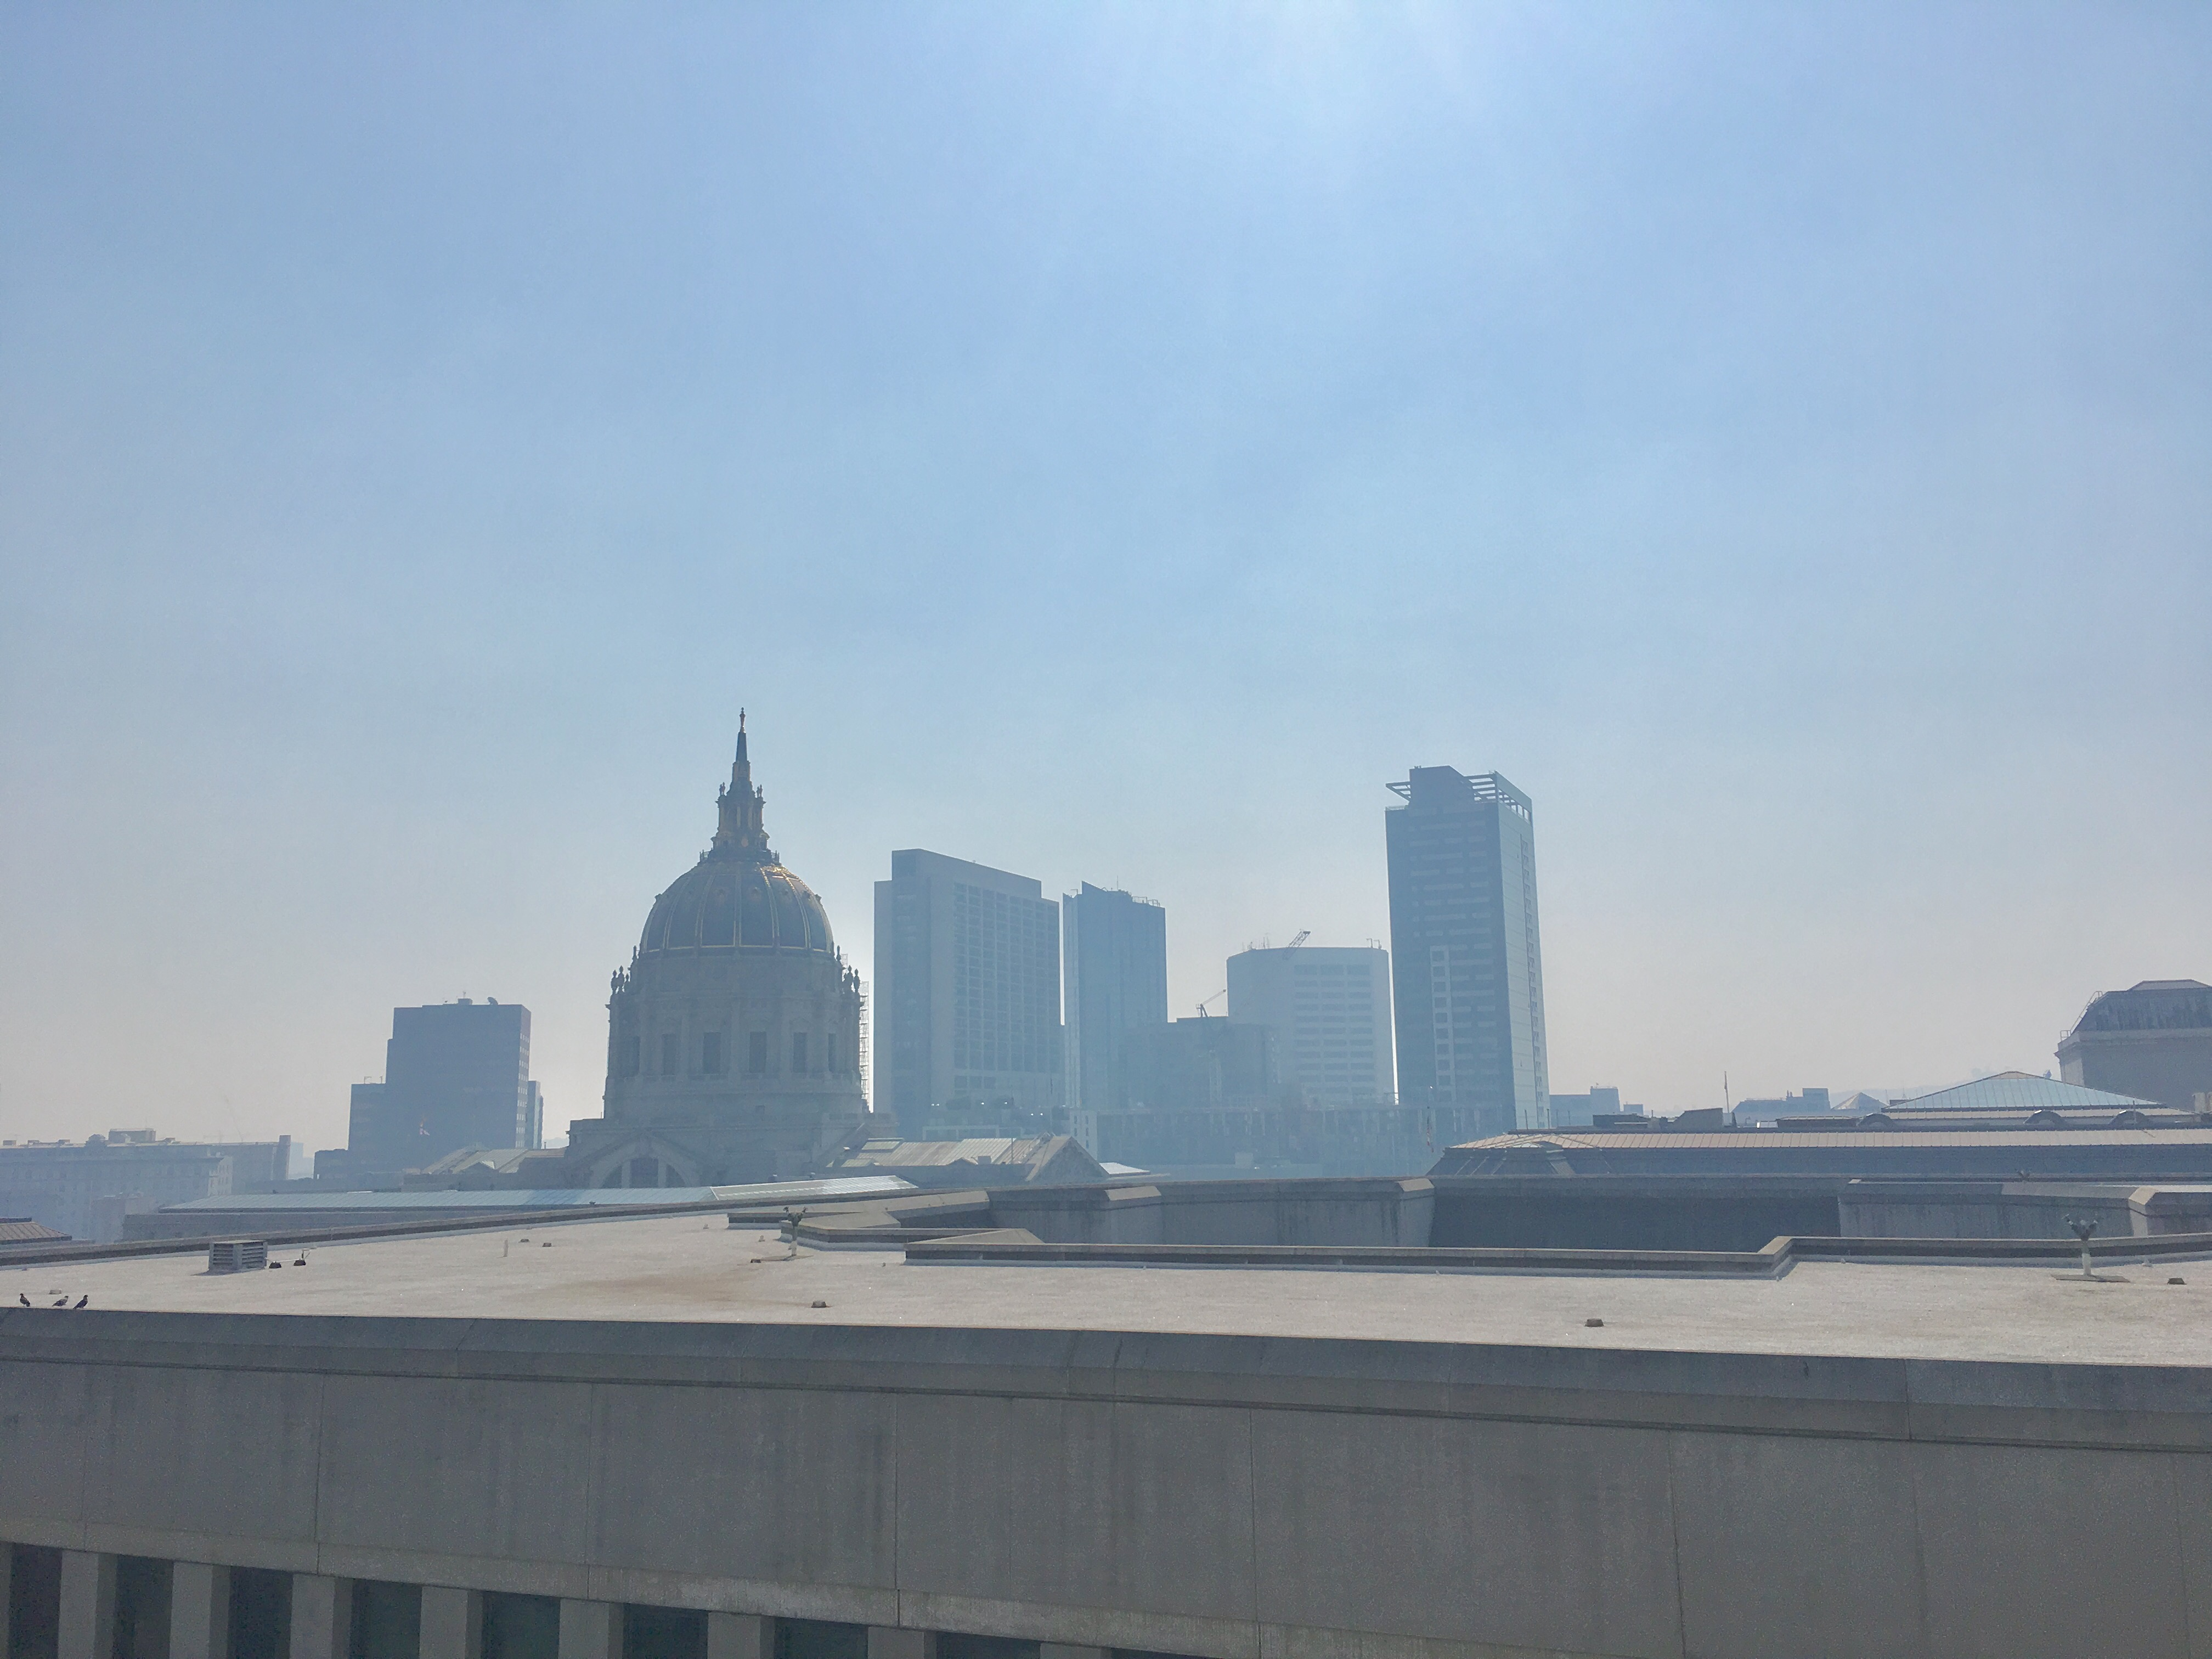 FILE: Image shows smoke in downtown San Francisco on Friday, October 13, 2017 as wildfires rage throughout the northern part of California. (Sinclair Broadcast Group)